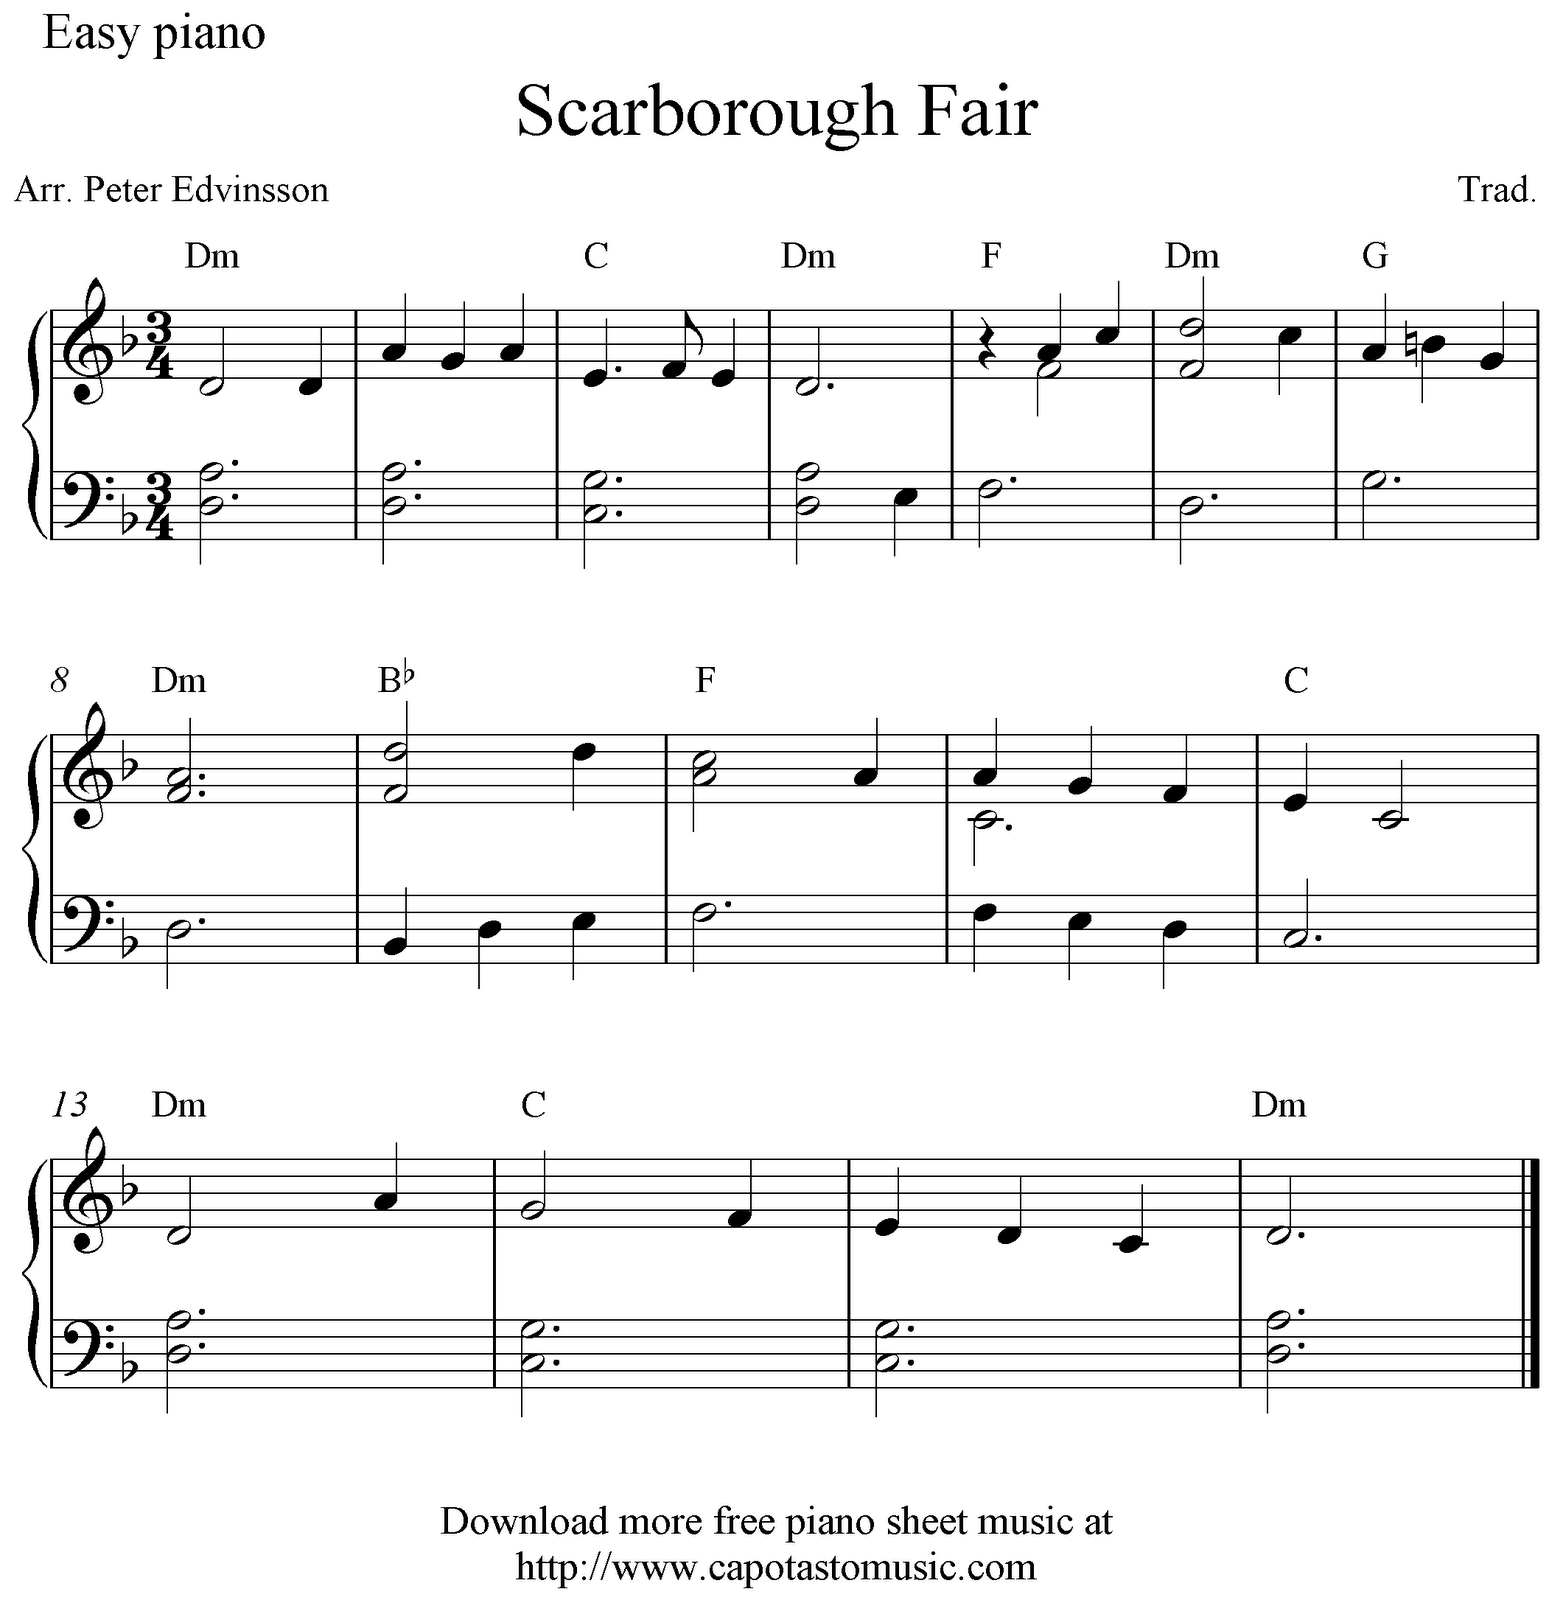 Free Easy Piano Sheet Music Score Scarborough Fair